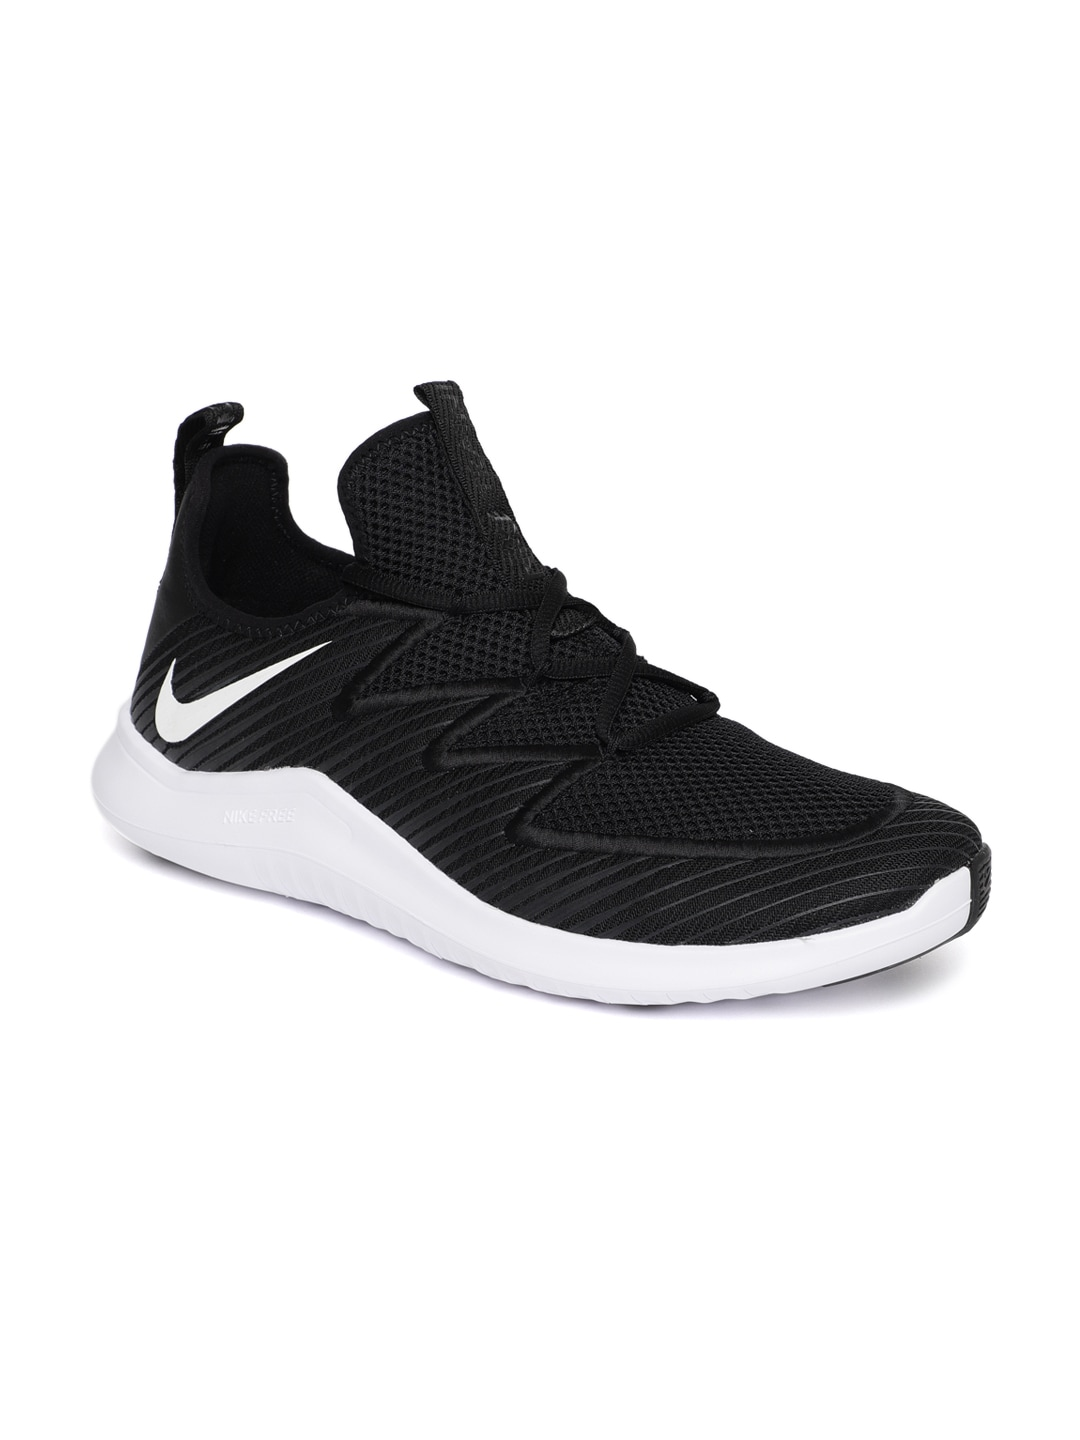 457753555137a Nike Training Shoes - Buy Nike Training Shoes For Men   Women in India